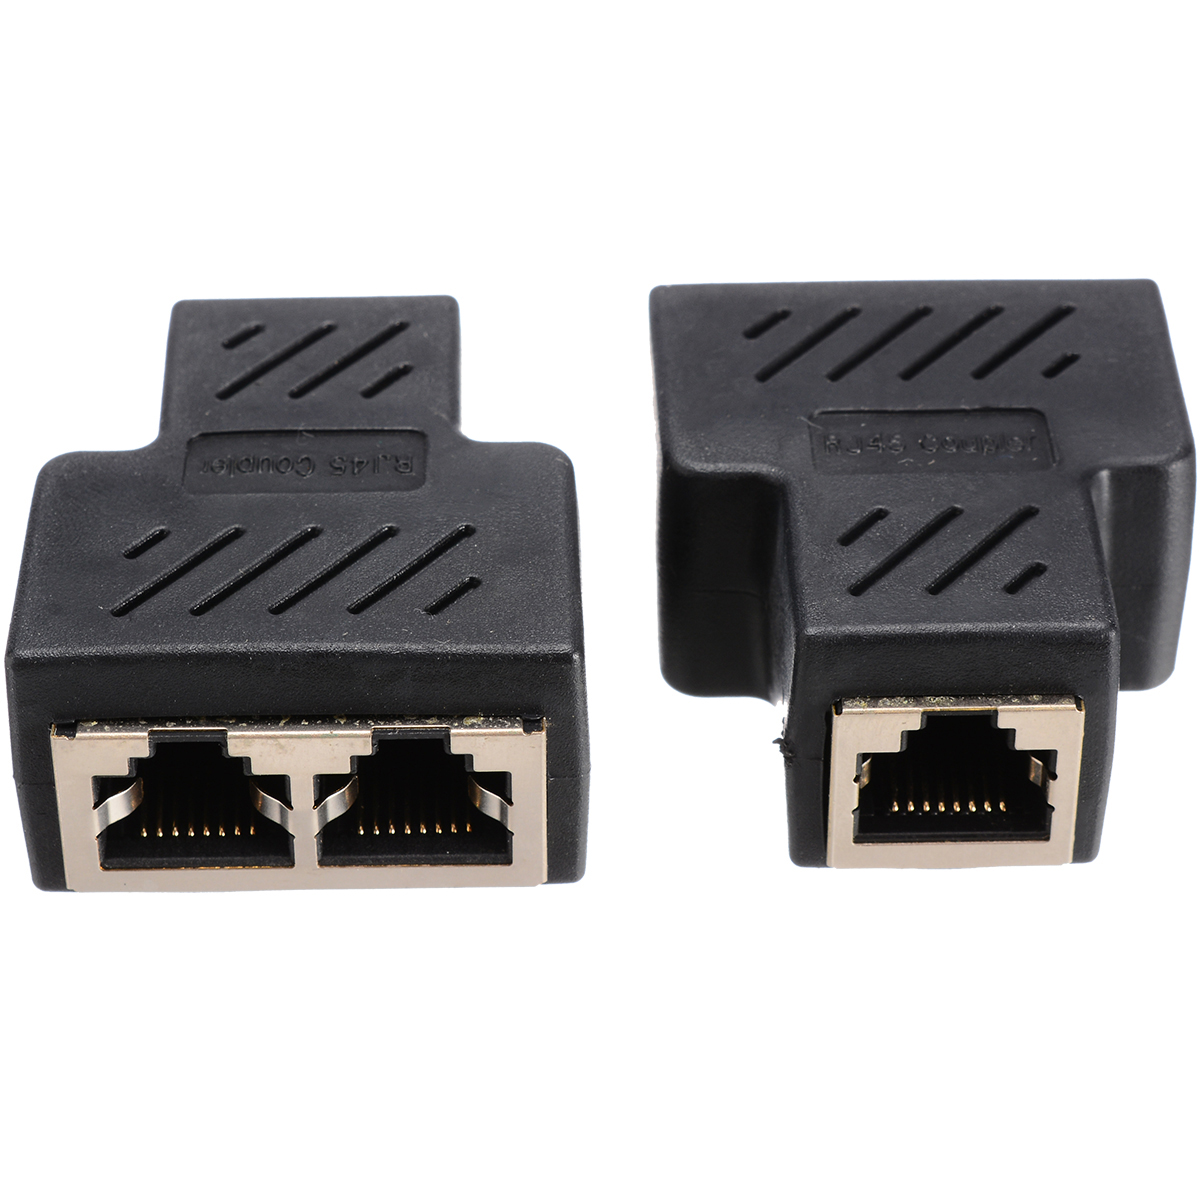 <font><b>1</b></font> Pair/2Pcs RJ45 Female <font><b>Splitter</b></font> Connector <font><b>Adapter</b></font> <font><b>1</b></font> <font><b>To</b></font> <font><b>2</b></font> Female Coupler Port LAN <font><b>Ethernet</b></font> Network Cable Connecter image